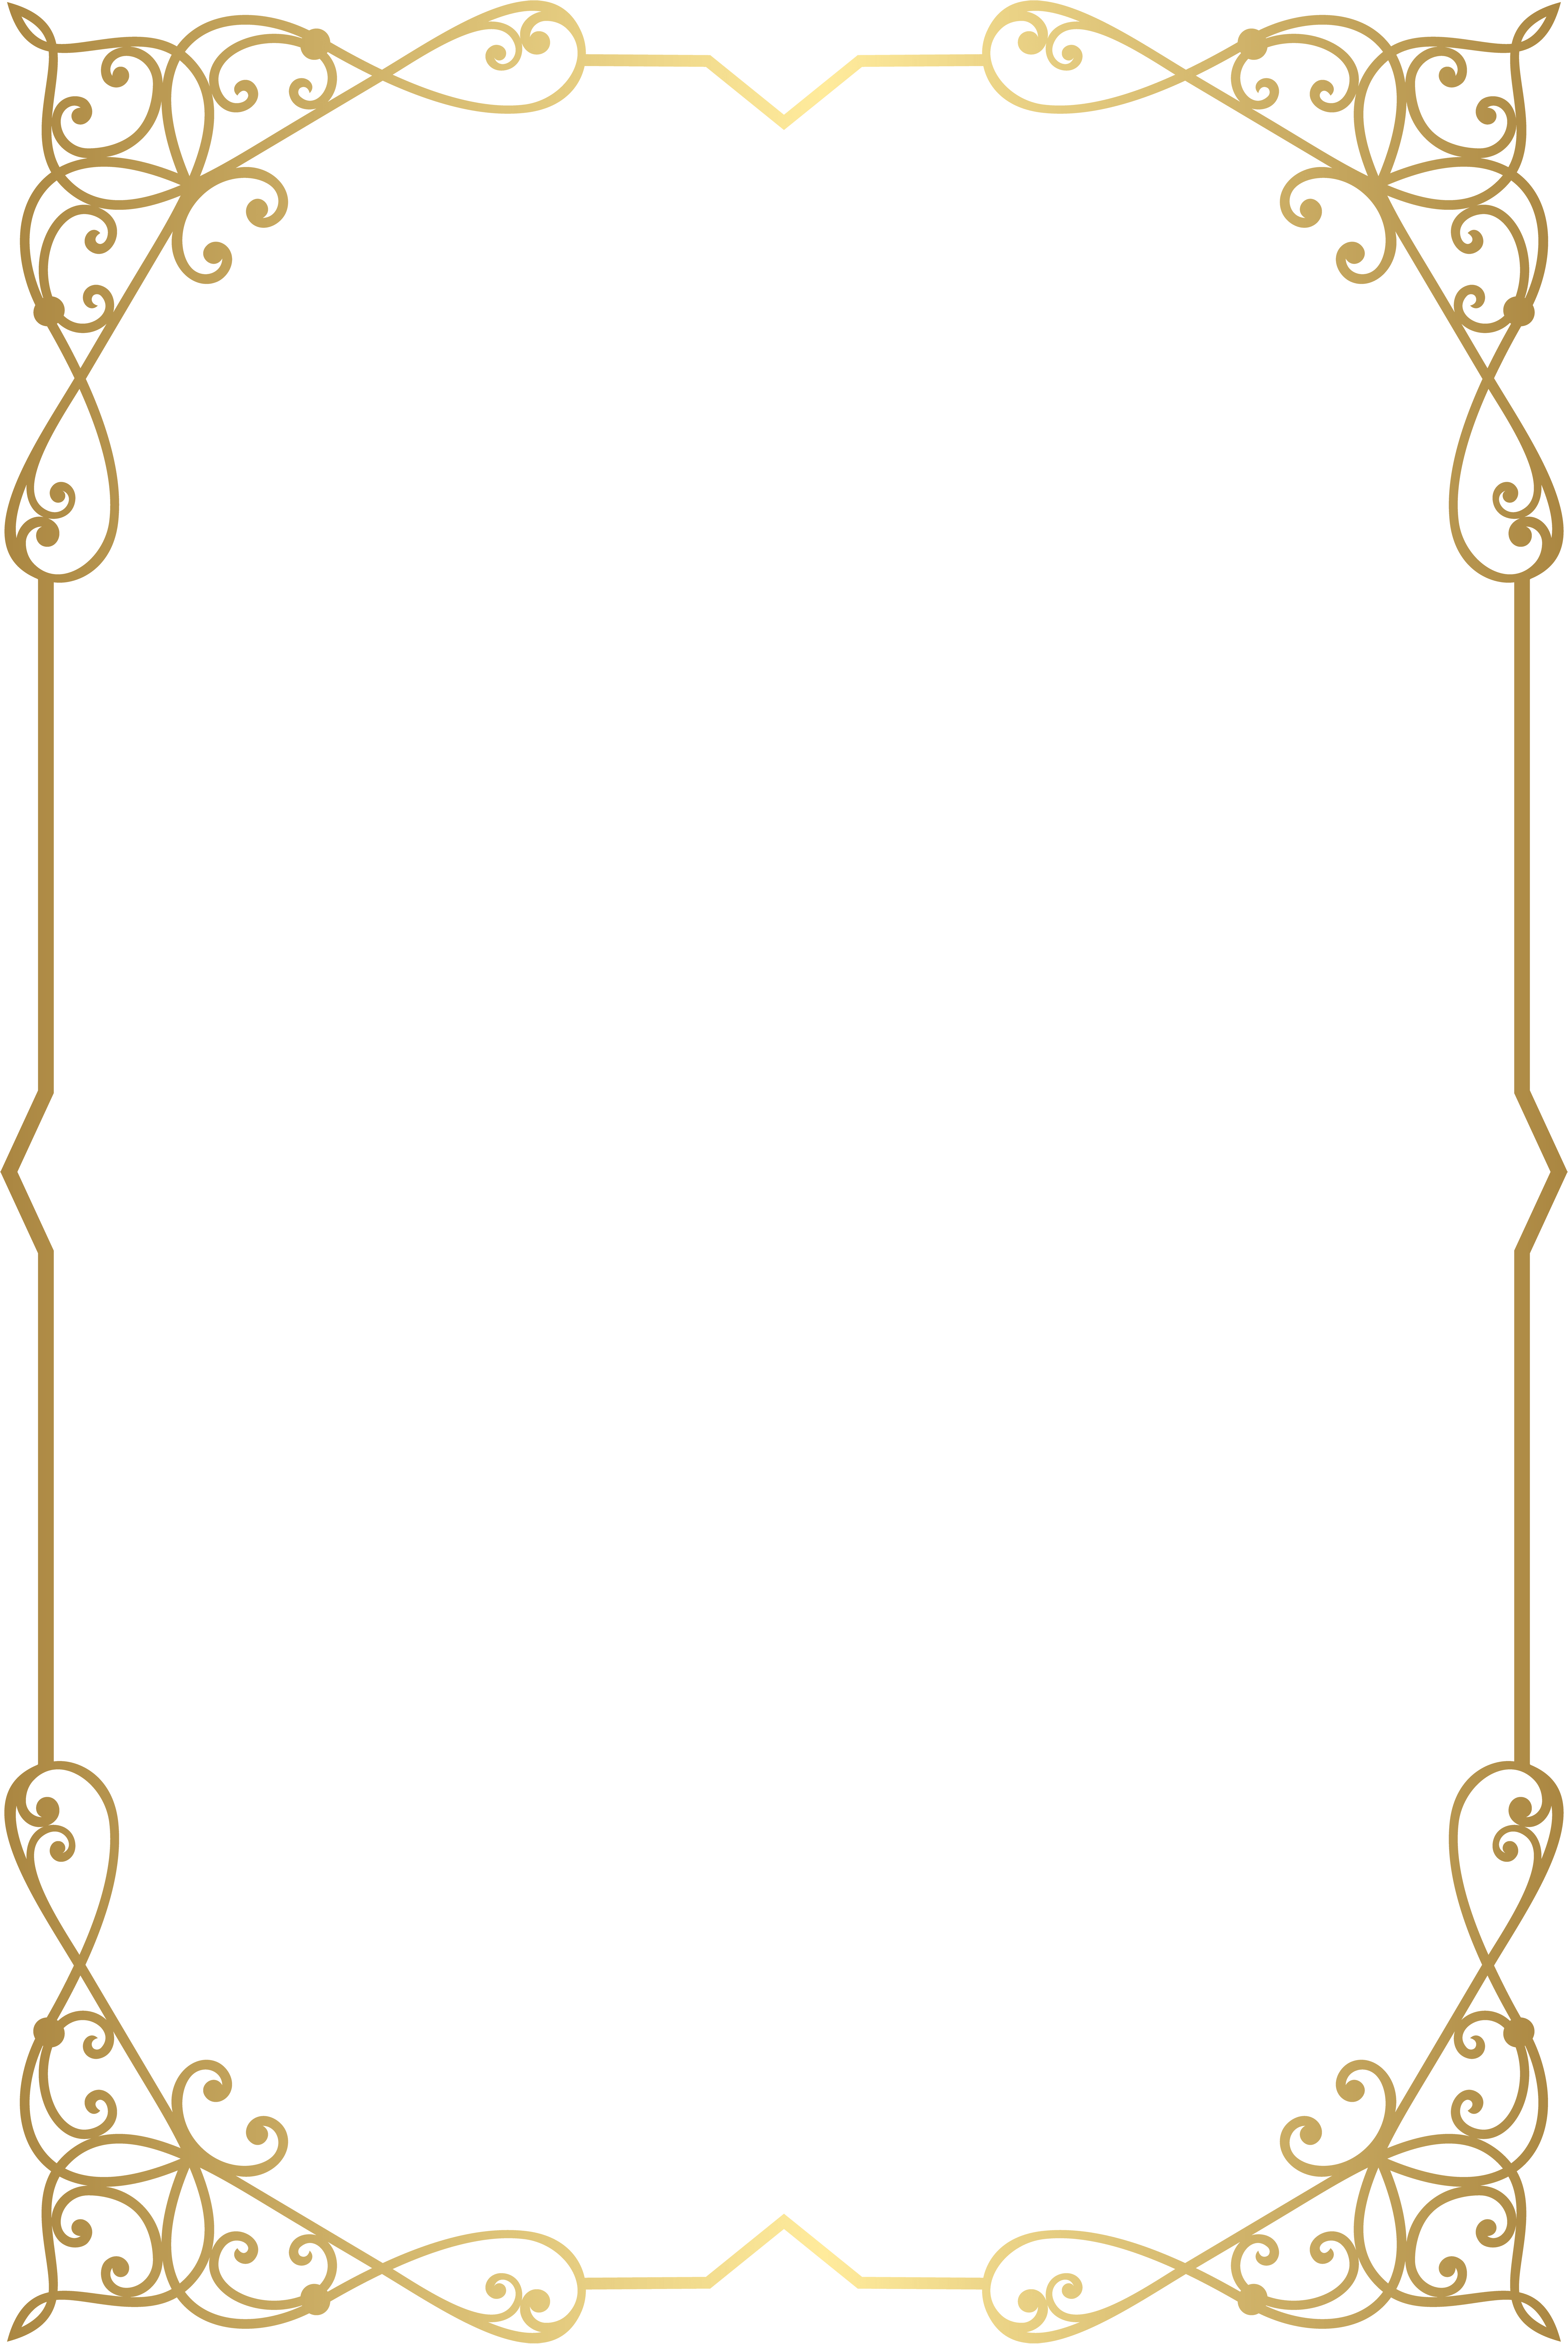 Gold Border Transparent Background : border, transparent, background, Decorative, Frame, Border, Image, Gallery, Fancy, Download,, Transparent, Frames, Borders,, Images